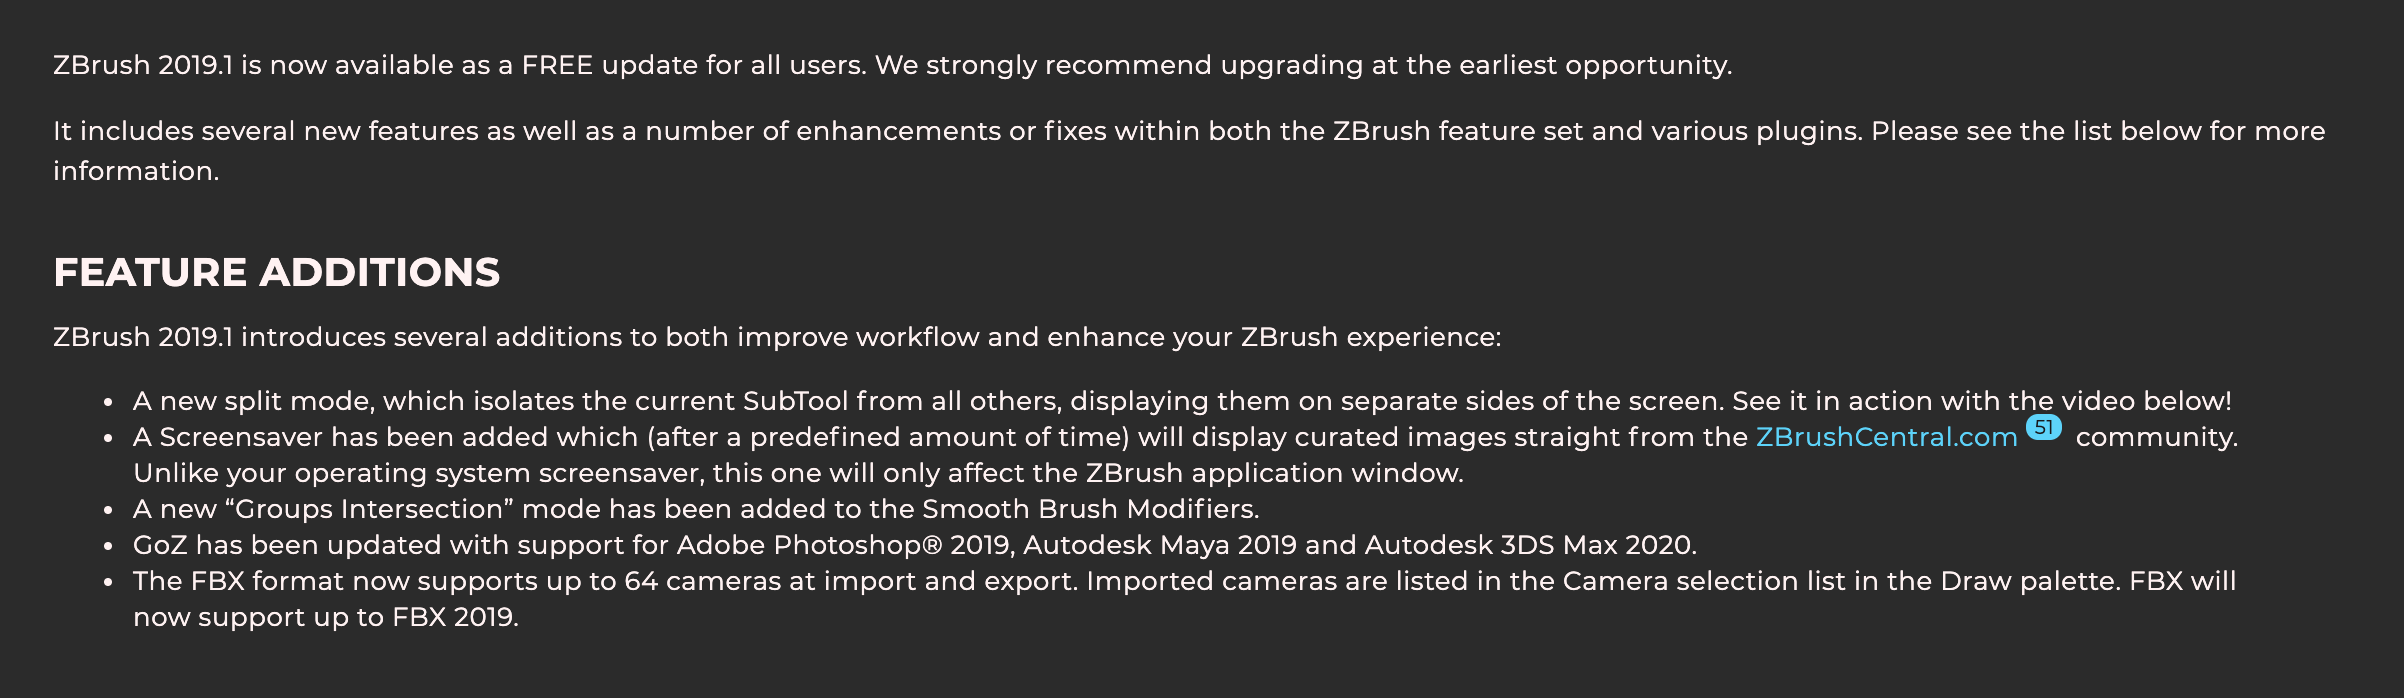 I purchased Zbrush 2018, is Zbrush 2019 and 2019 1 available for